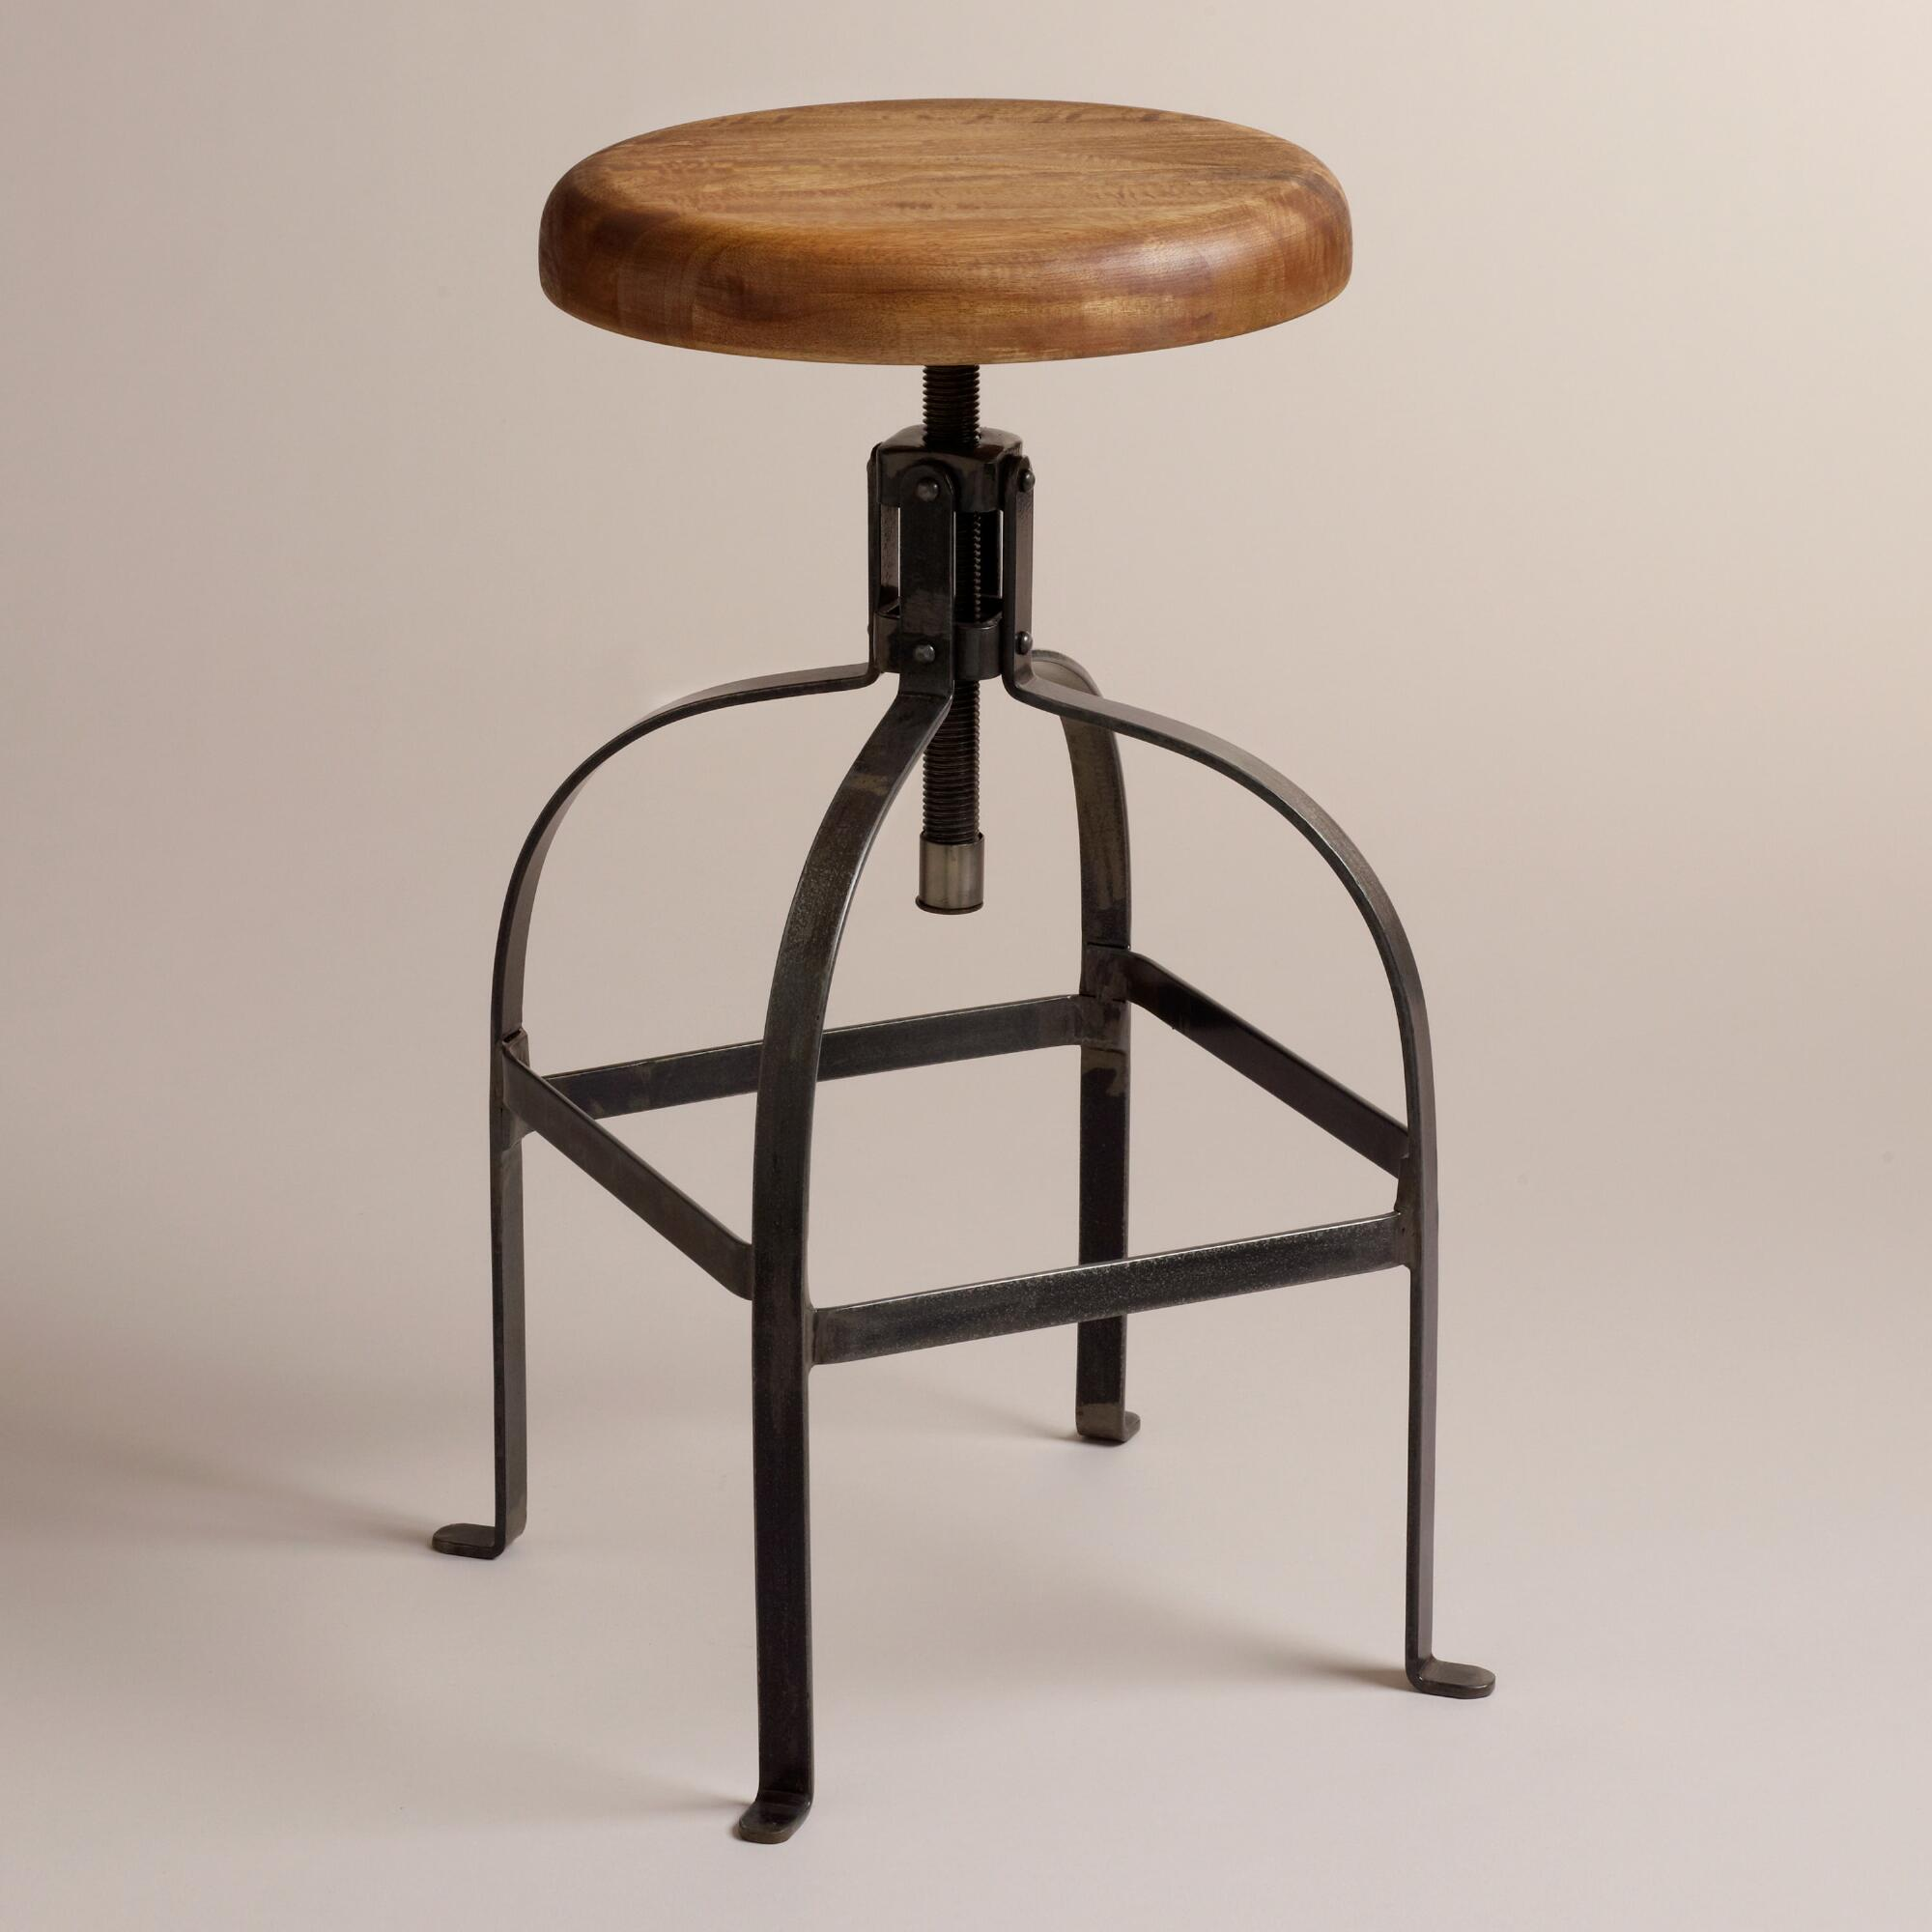 Superb img of Twist Swivel Stool from Cost Plus World Market with #6B452A color and 2000x2000 pixels